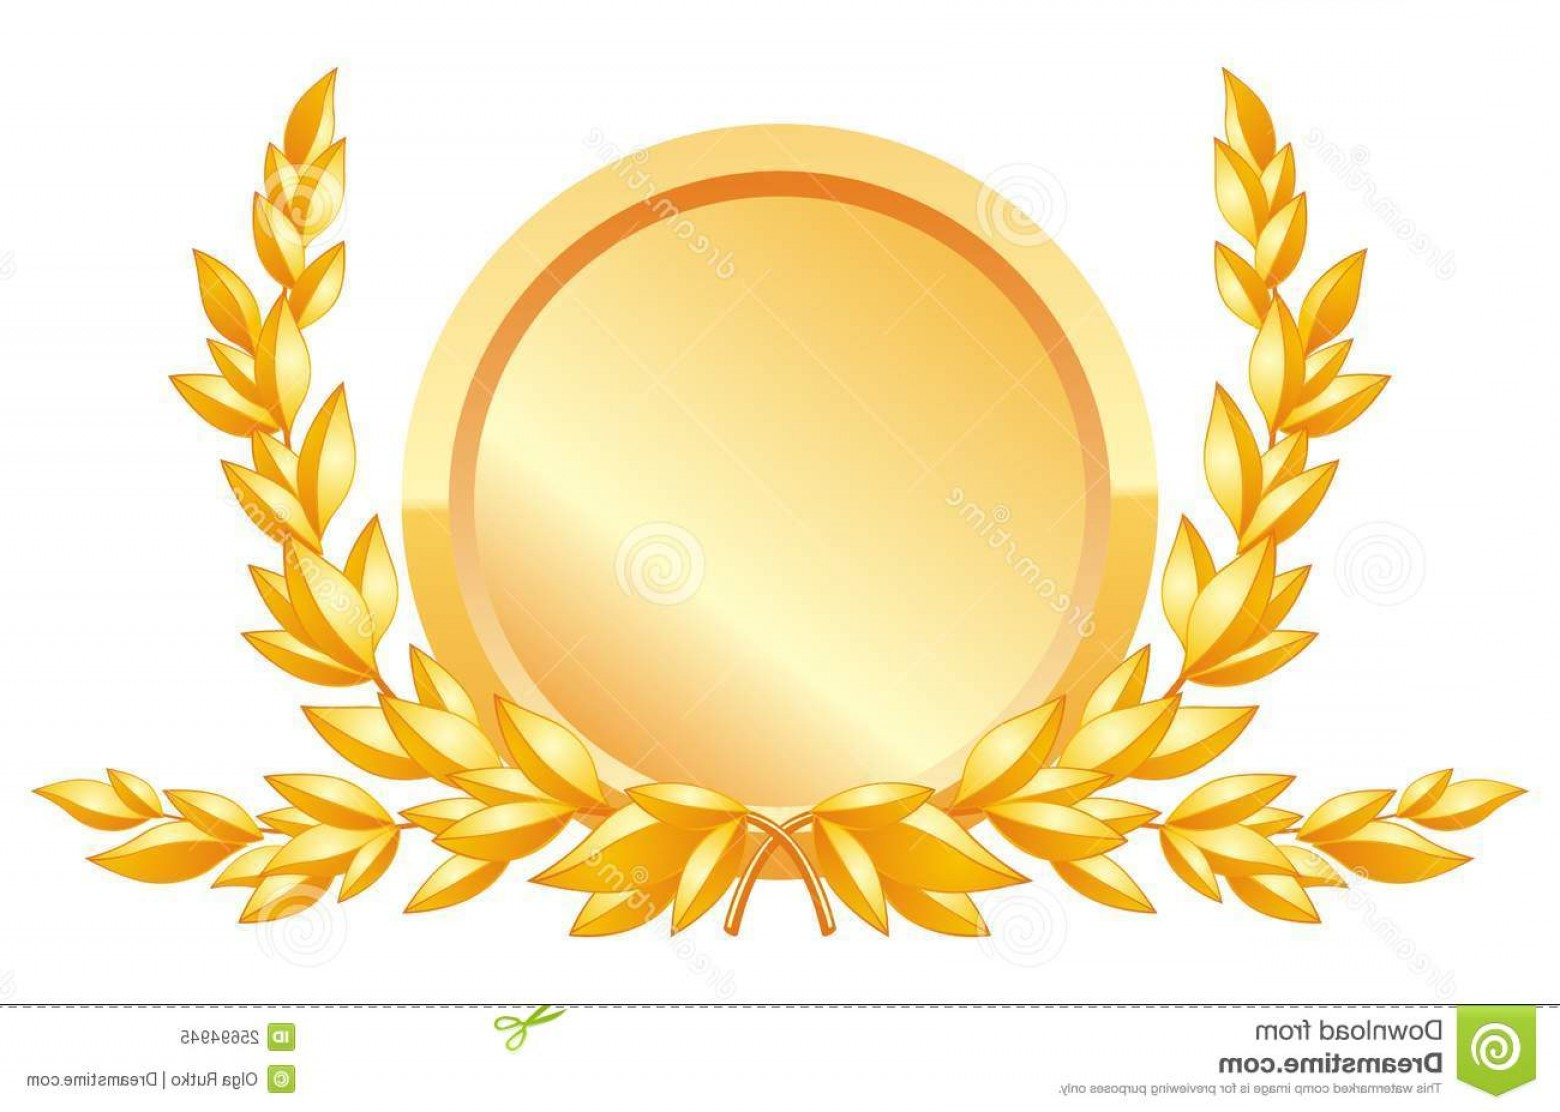 Award Vector Leaves: Royalty Free Stock Photo Award Decoration Image